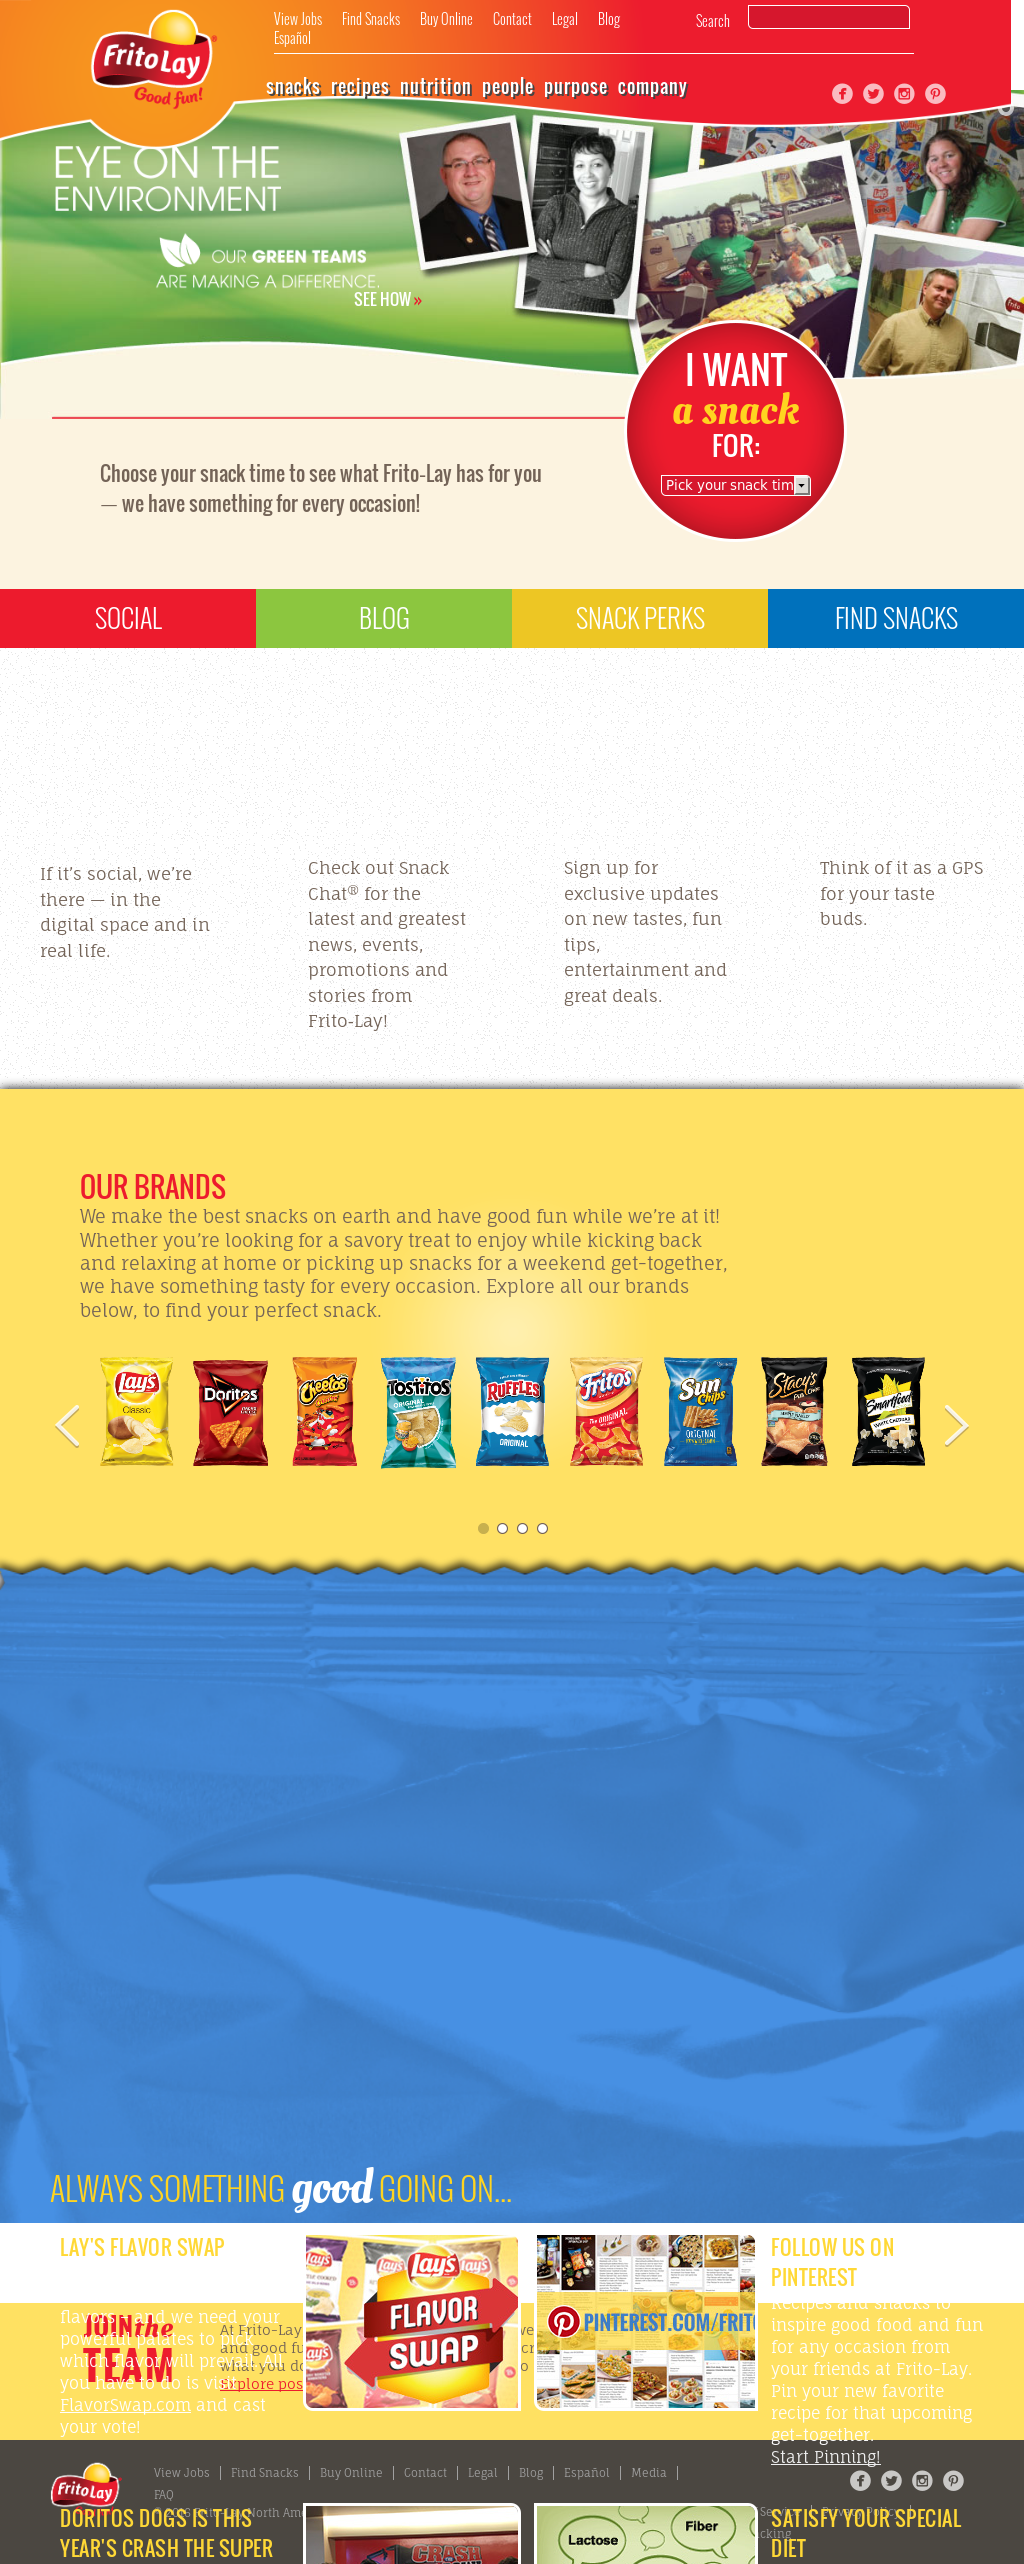 Frito-Lay Competitors, Revenue and Employees - Owler Company